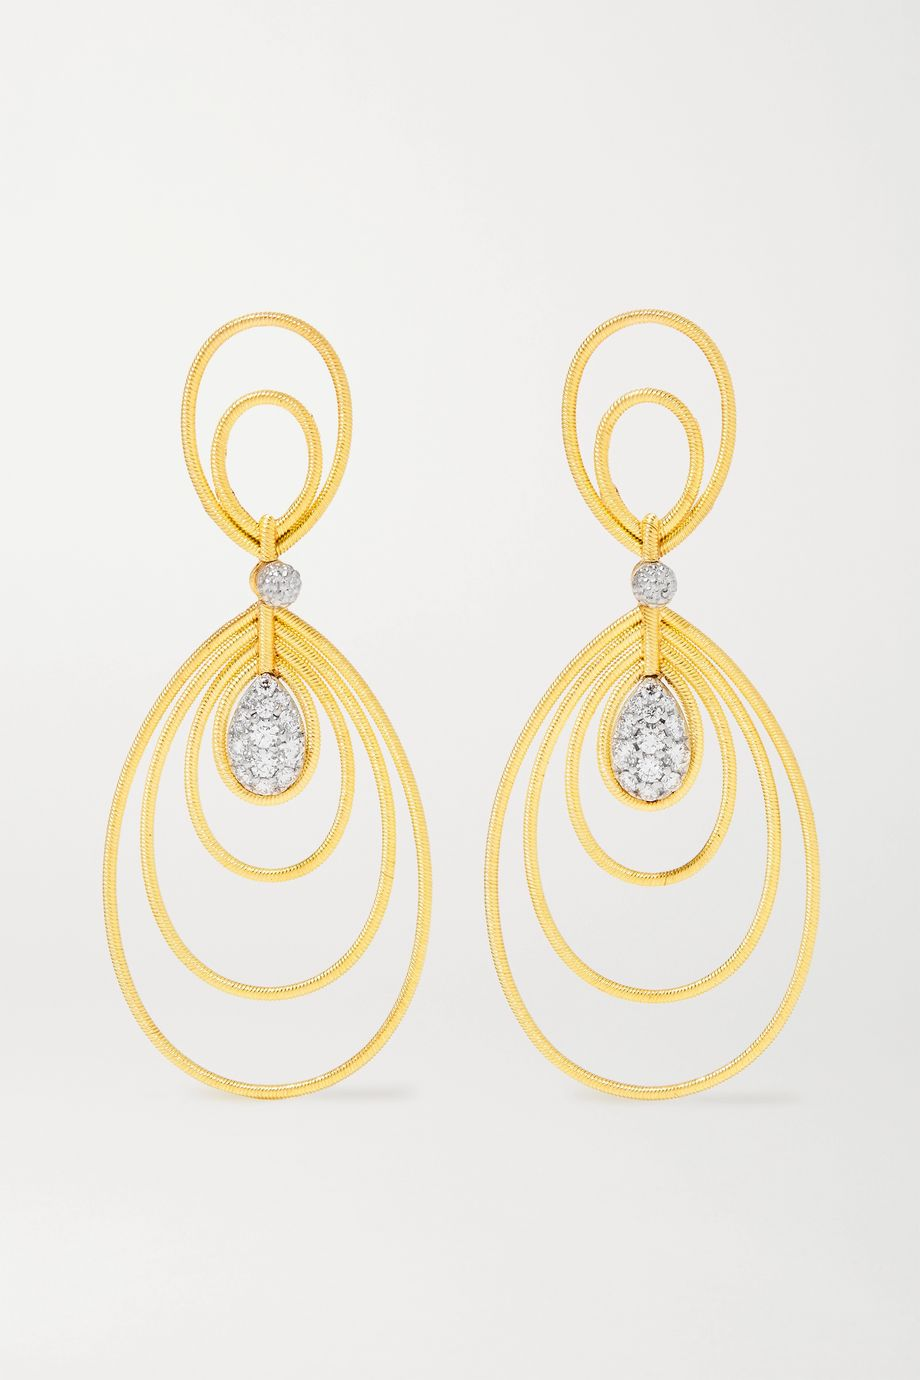 Buccellati Hawaii Waikiki 18-karat gold diamond earrings